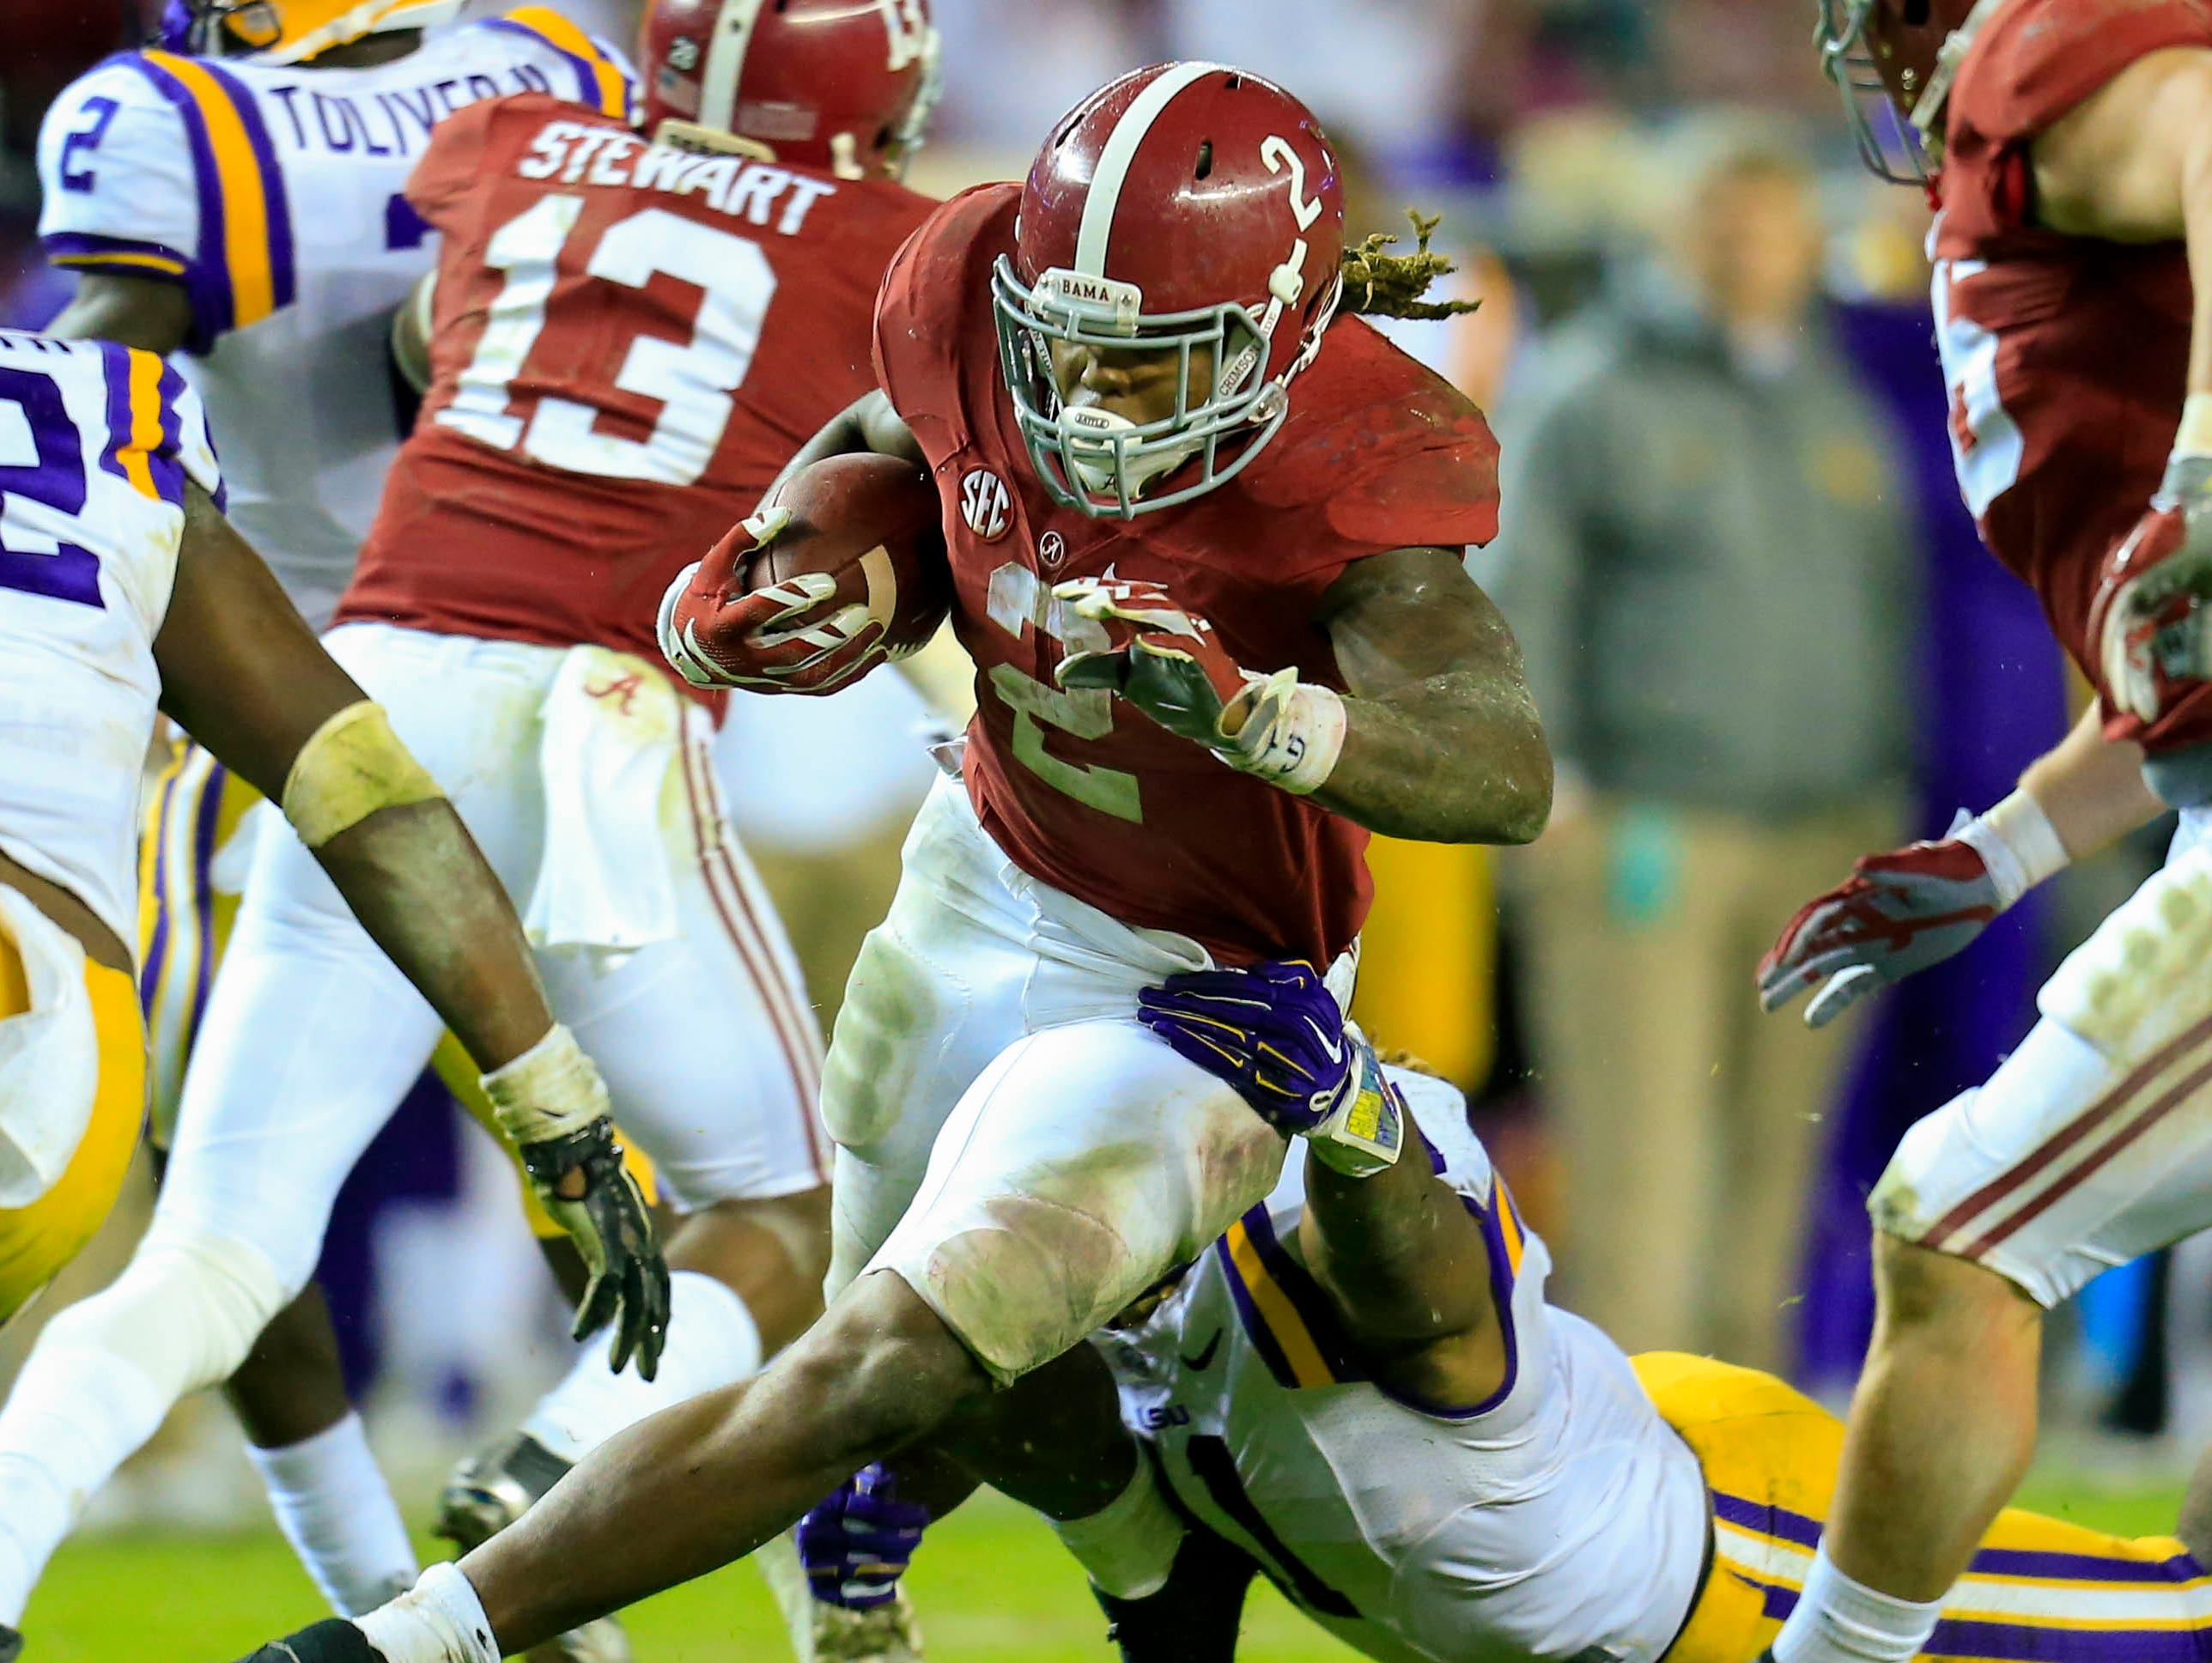 Alabama running back Derrick Henry is the sixth leading rusher in the country and faces Mississippi State this weekend.